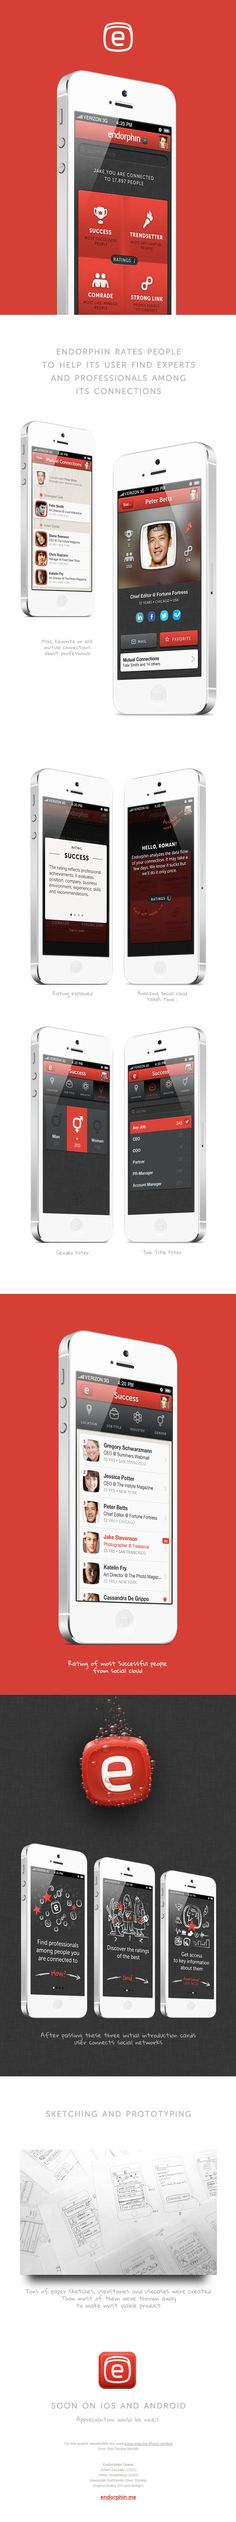 Endorphin by Keepa , via Behance *** Endorphin rates people to help its user find experts and professionals among its connections